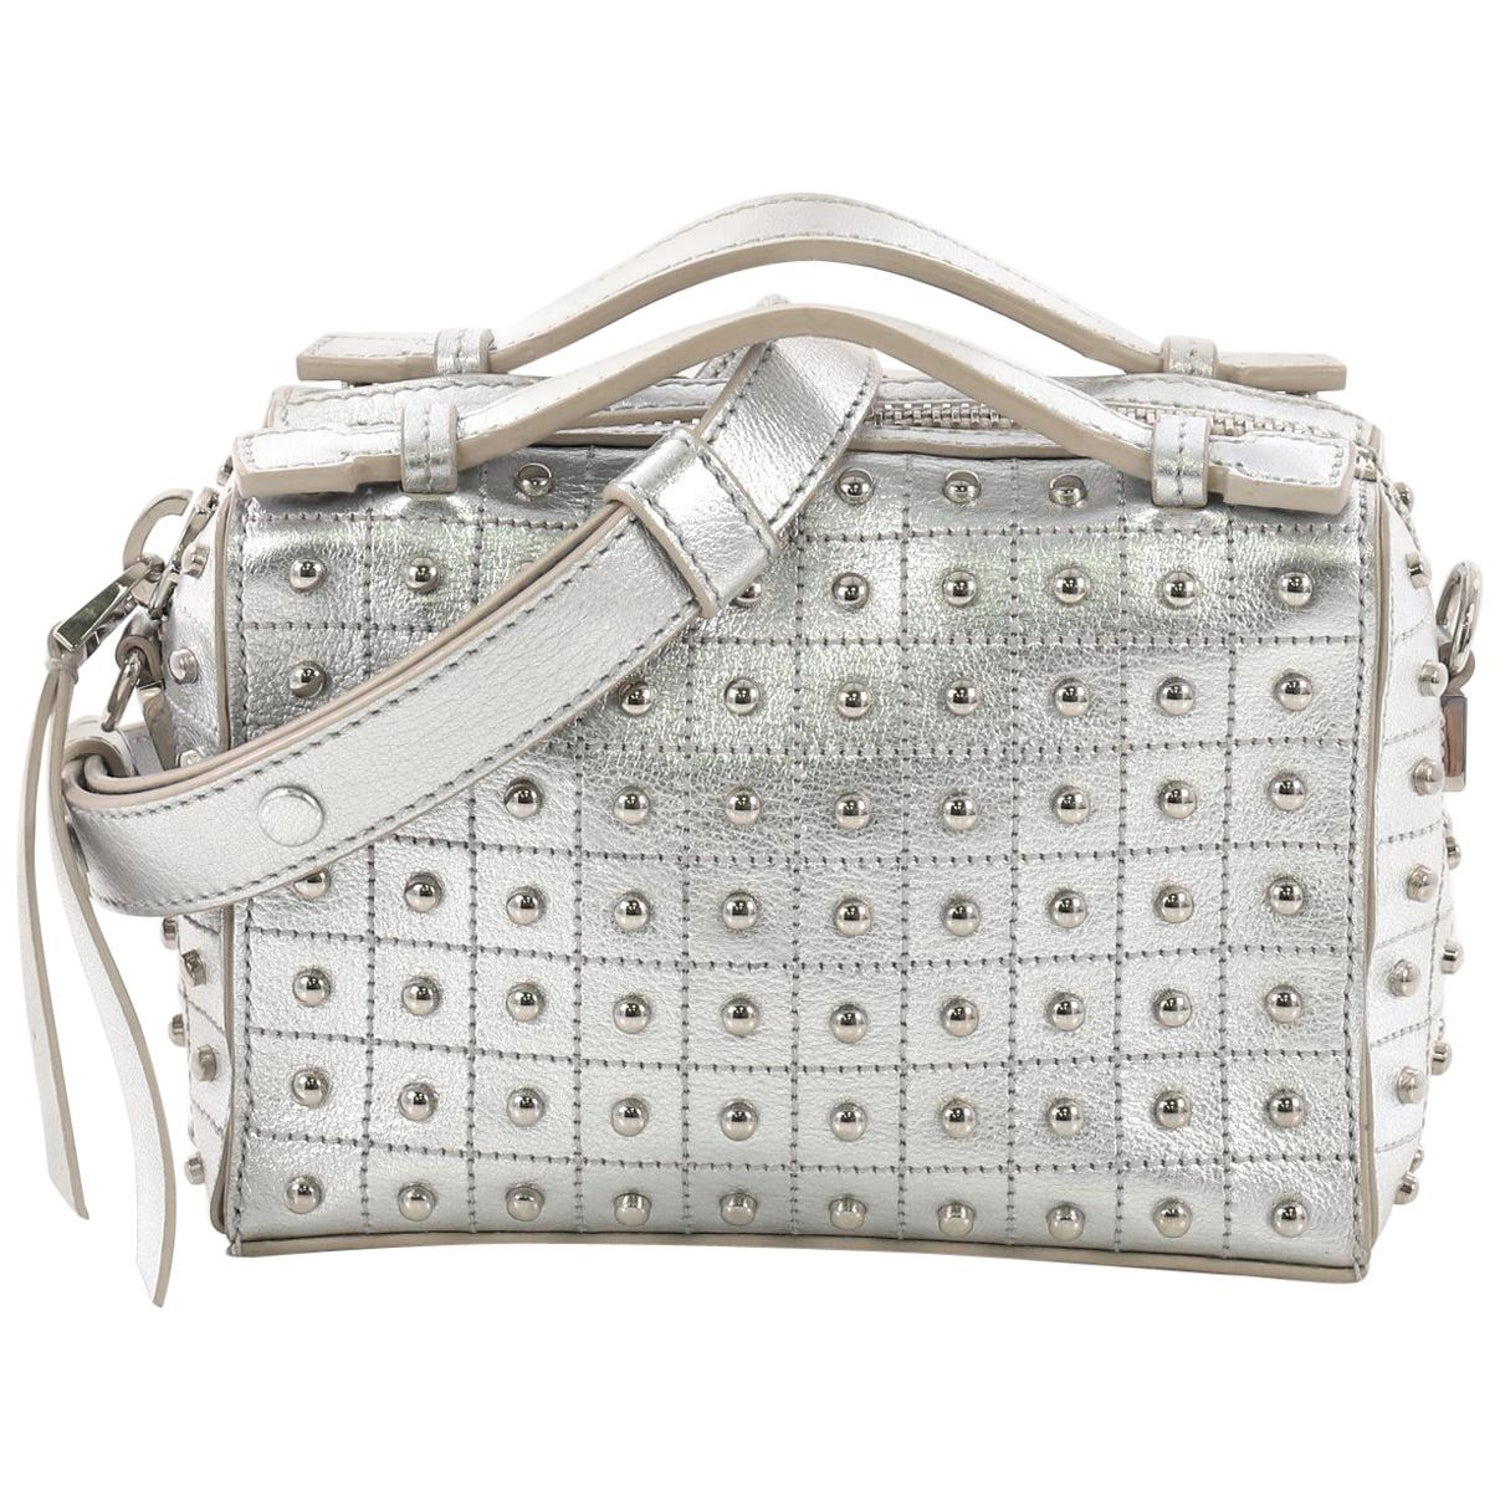 00296afea3 Tod's Gommino Shoulder Bag Studded Leather Micro at 1stdibs